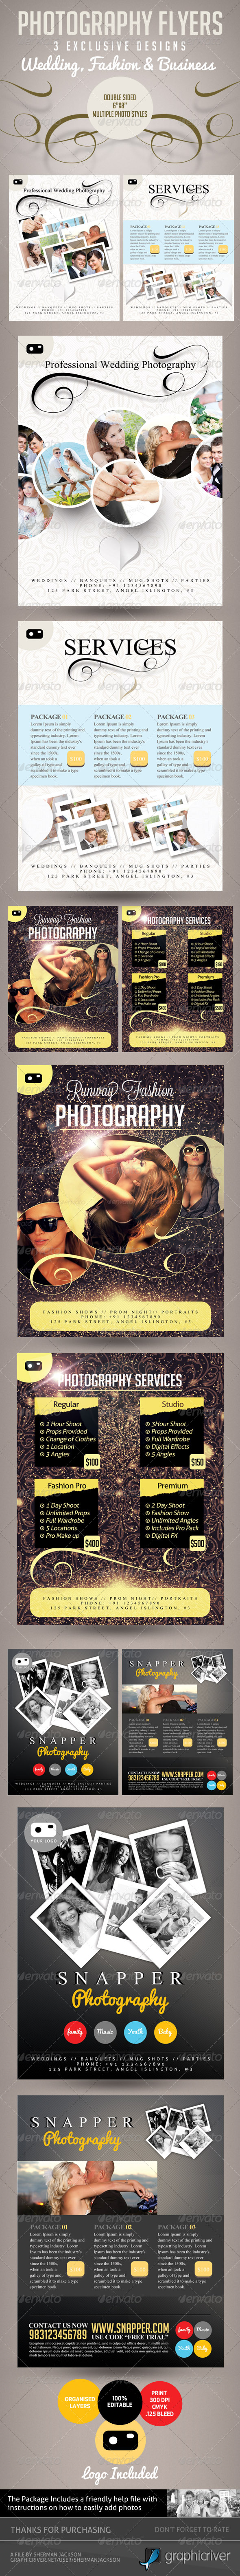 Photography Flyer Pro Series - 3 Themes in 1 - Corporate Flyers